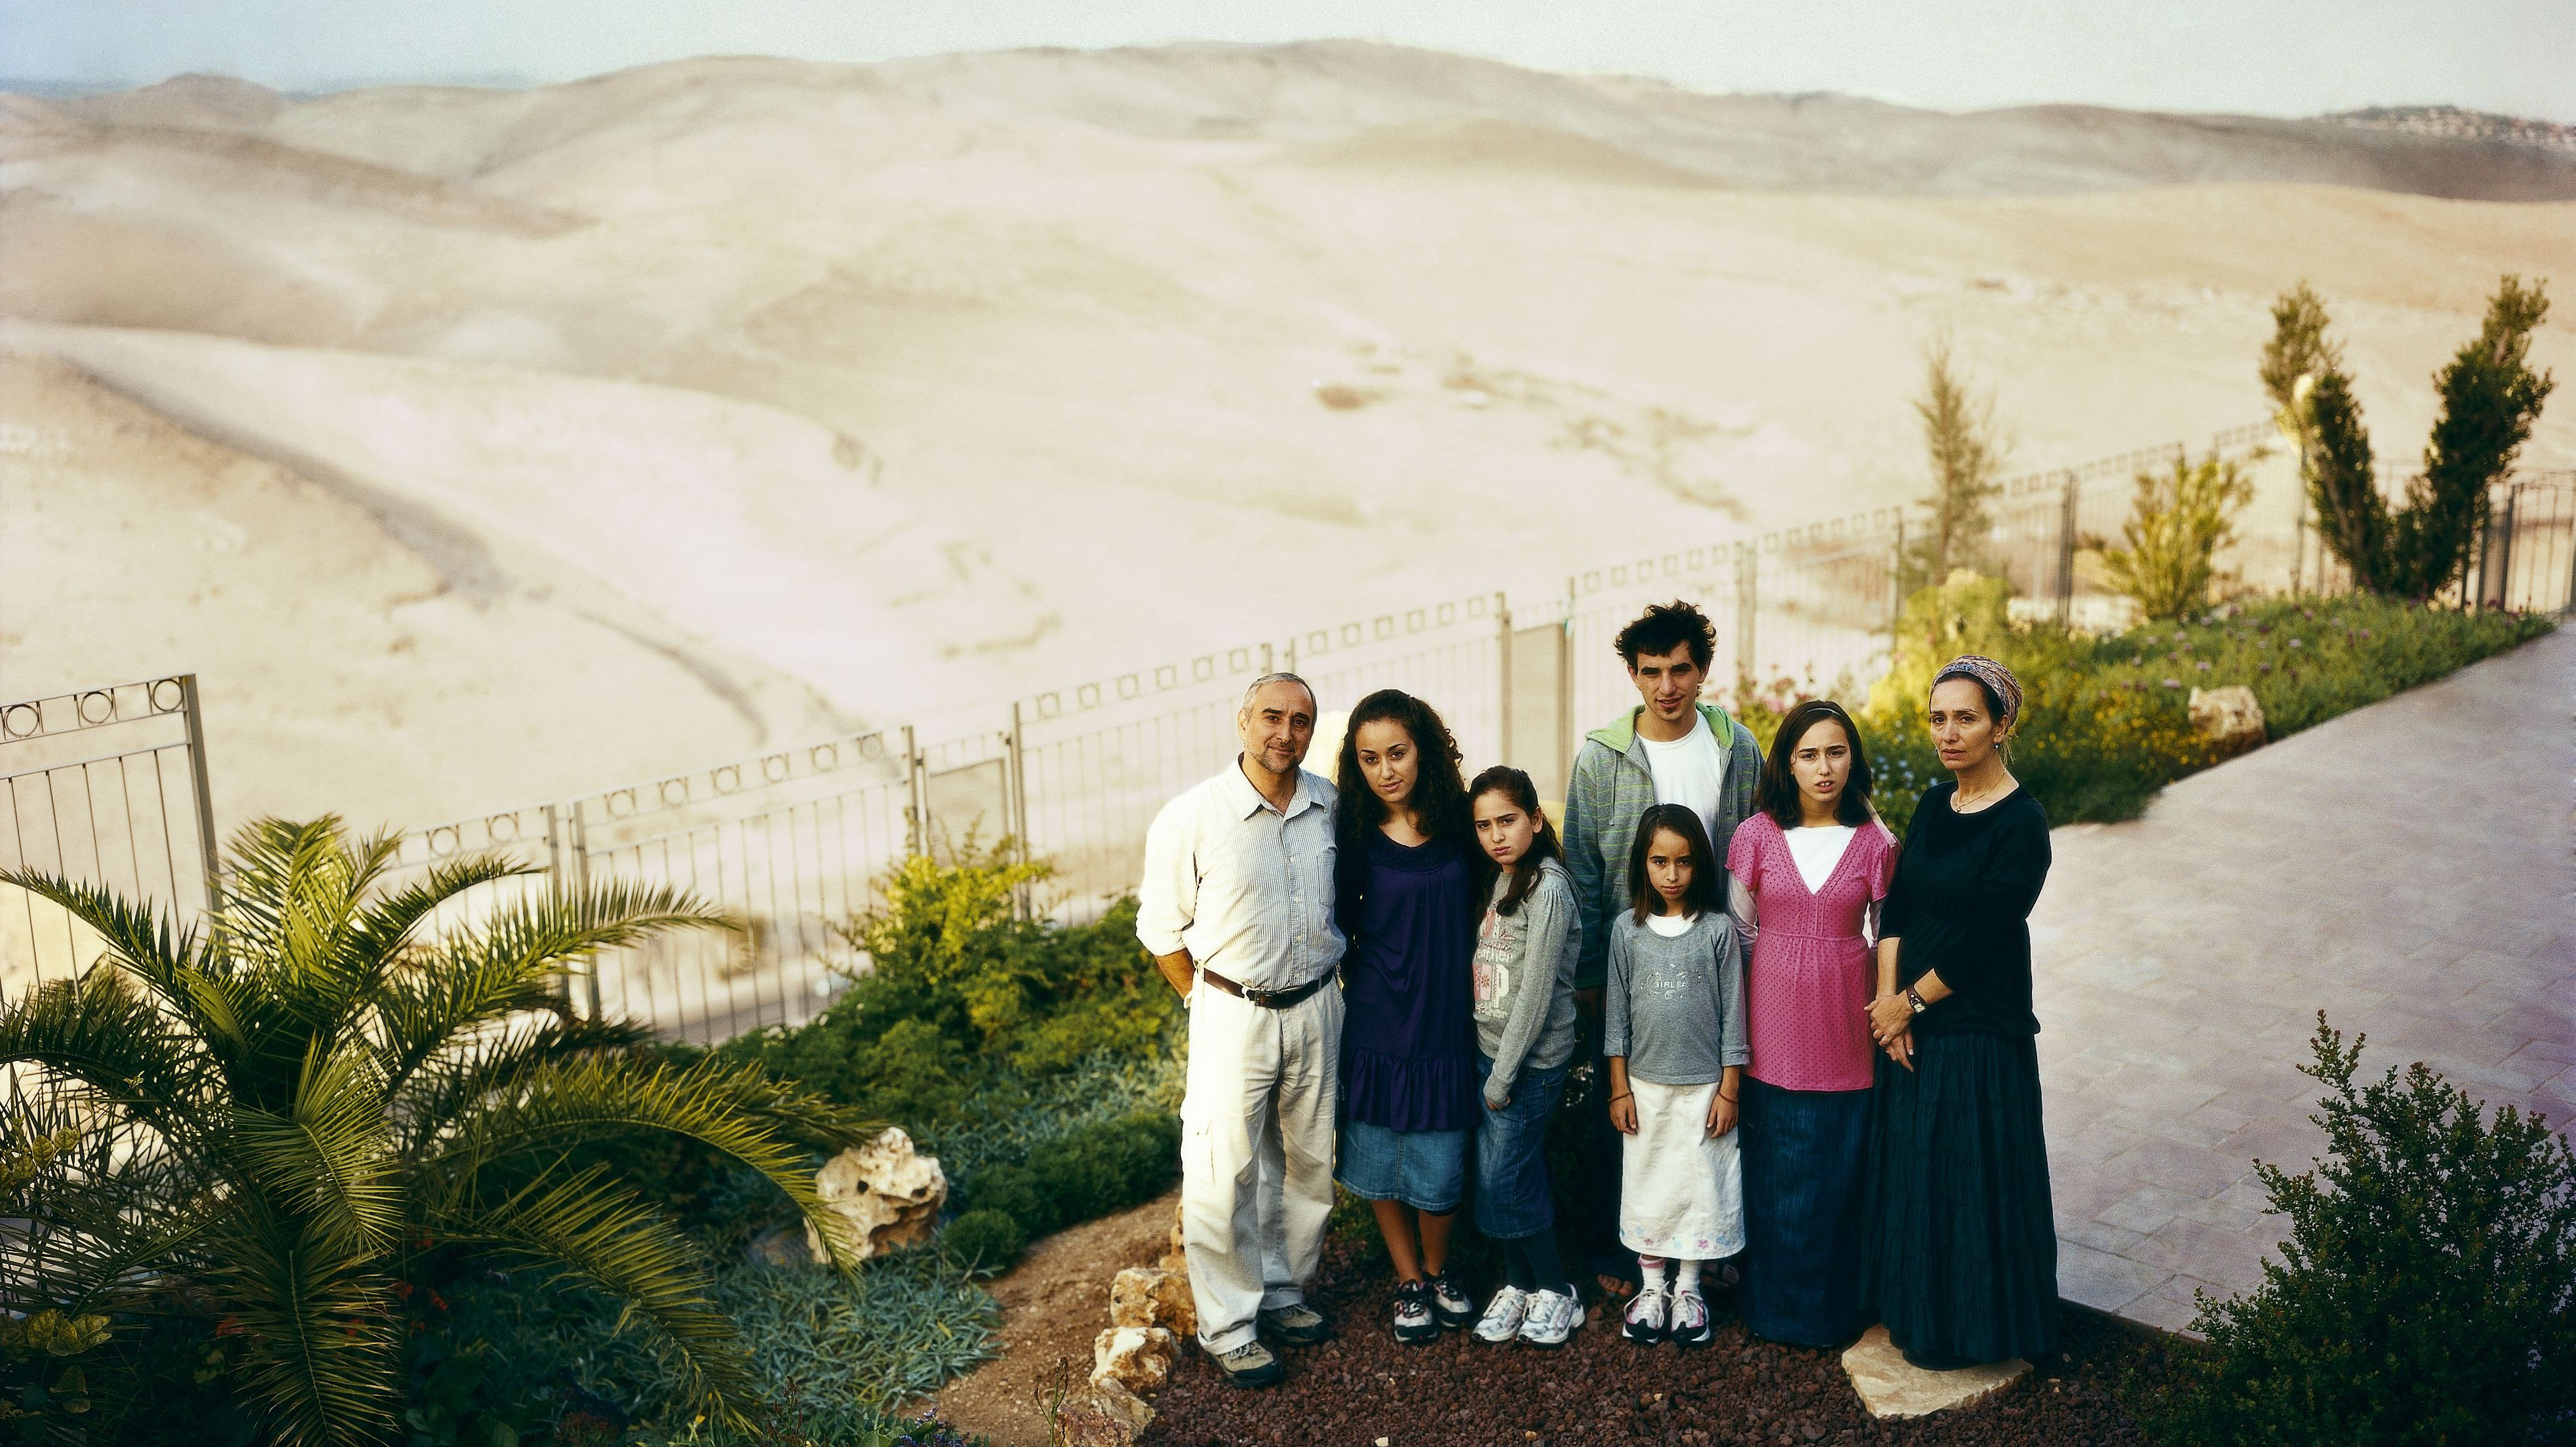 A family portrait of Jewish settlers in Ma'ale Adumim